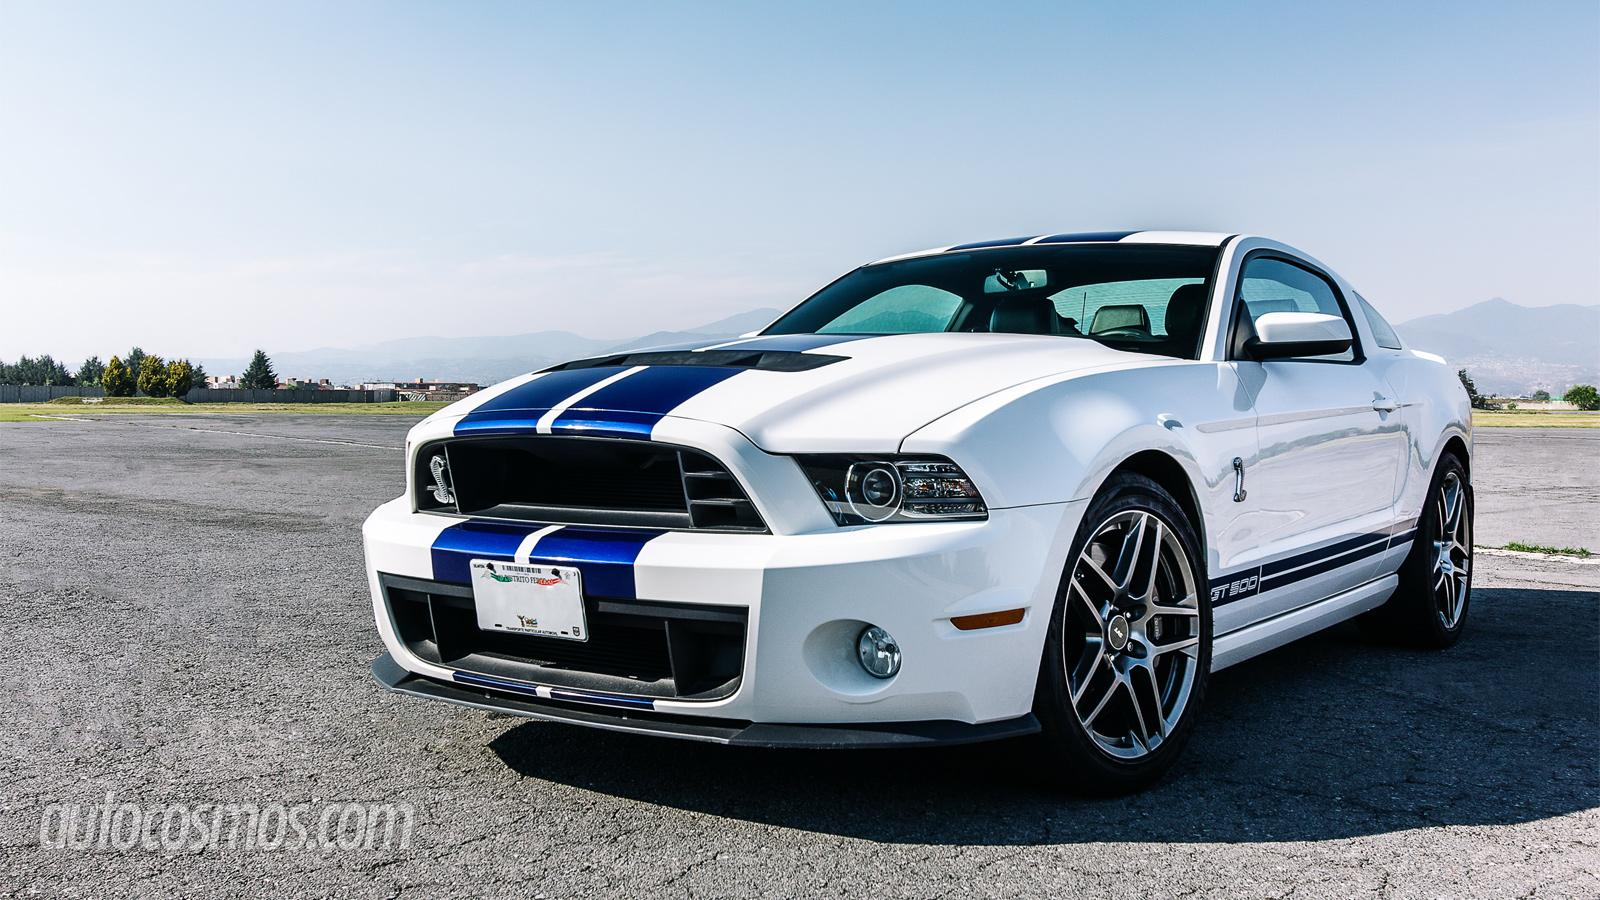 Super Comparativo Ford Mustang Shelby Gt500 Vs Ford Gt